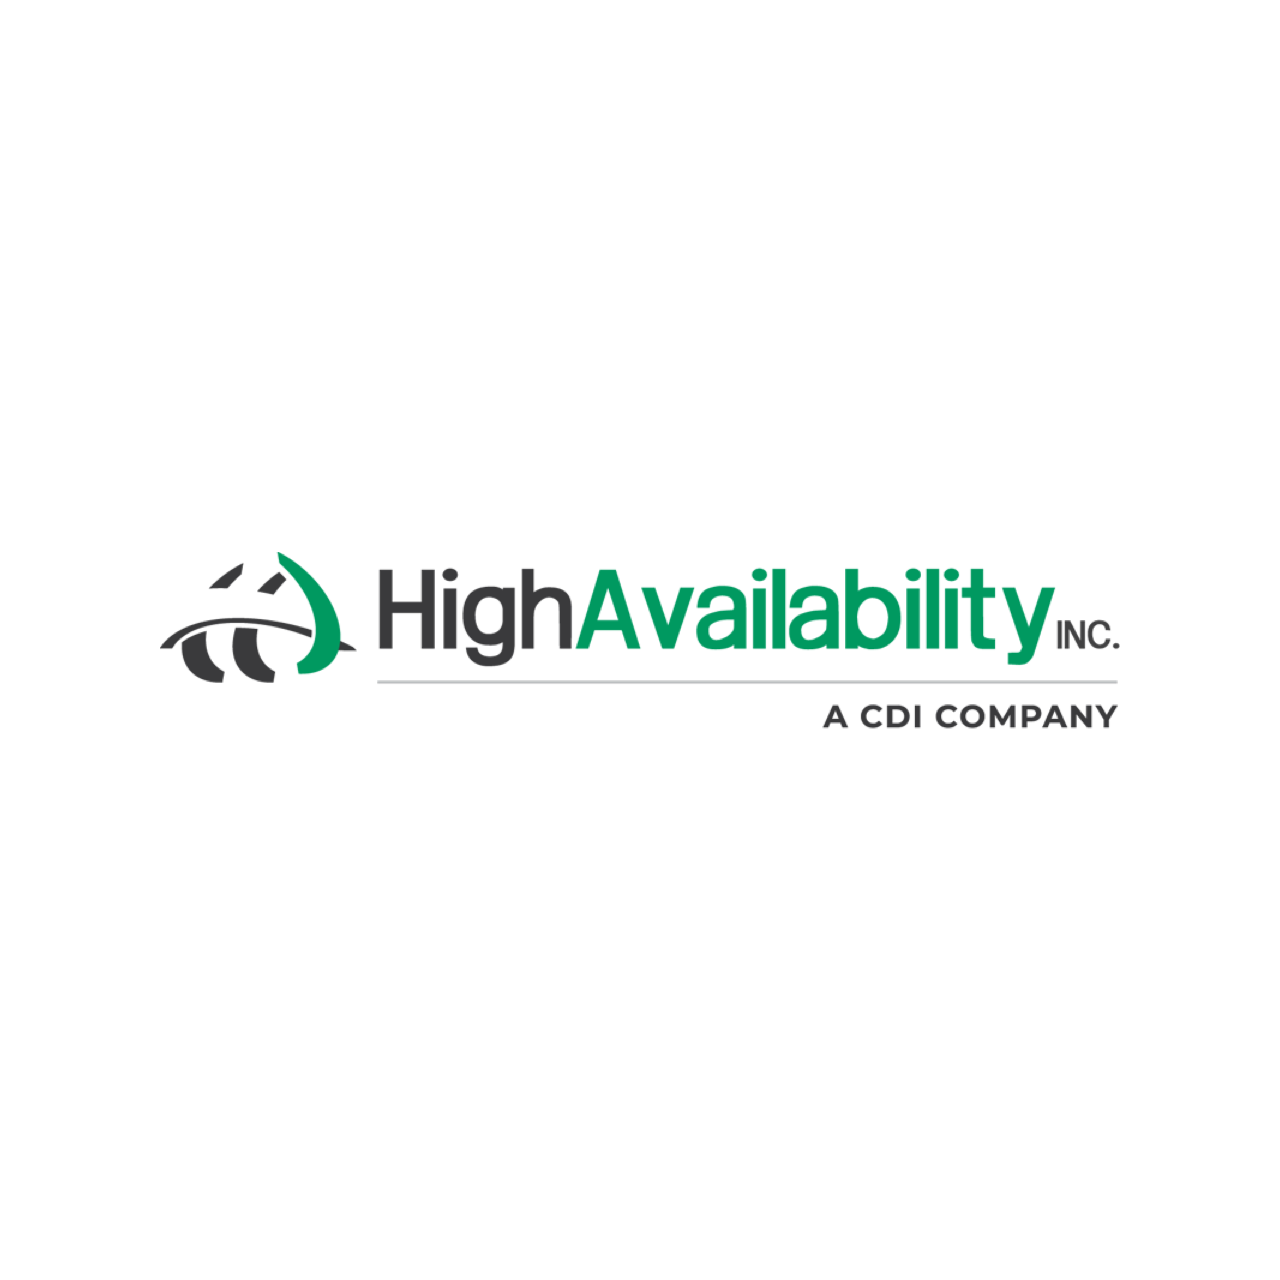 High Availability Inc